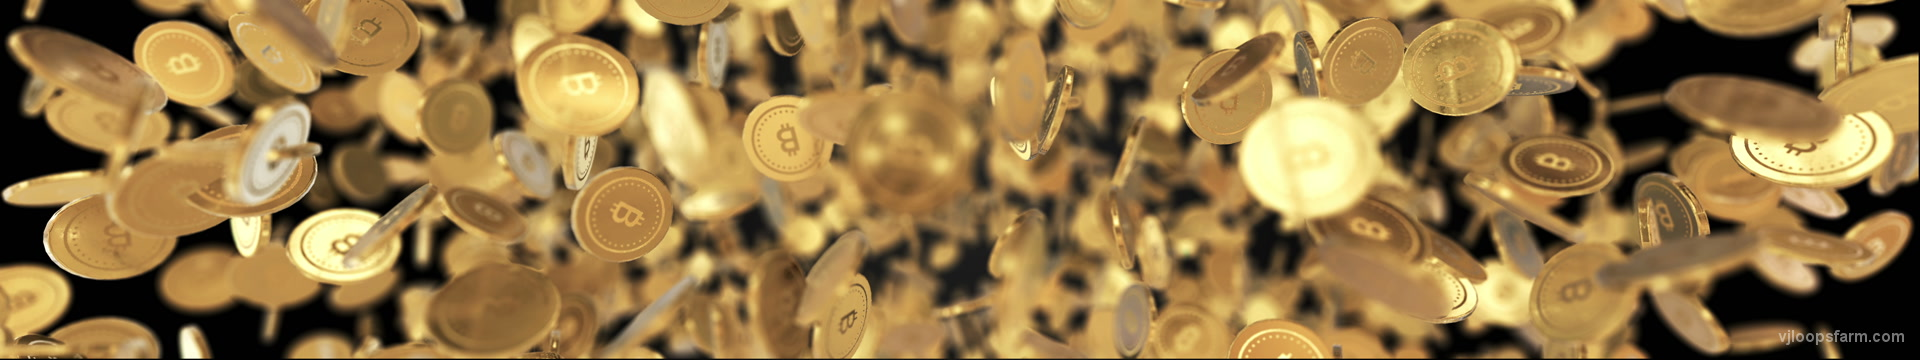 vj video background Bitcoin_5760_1080_003